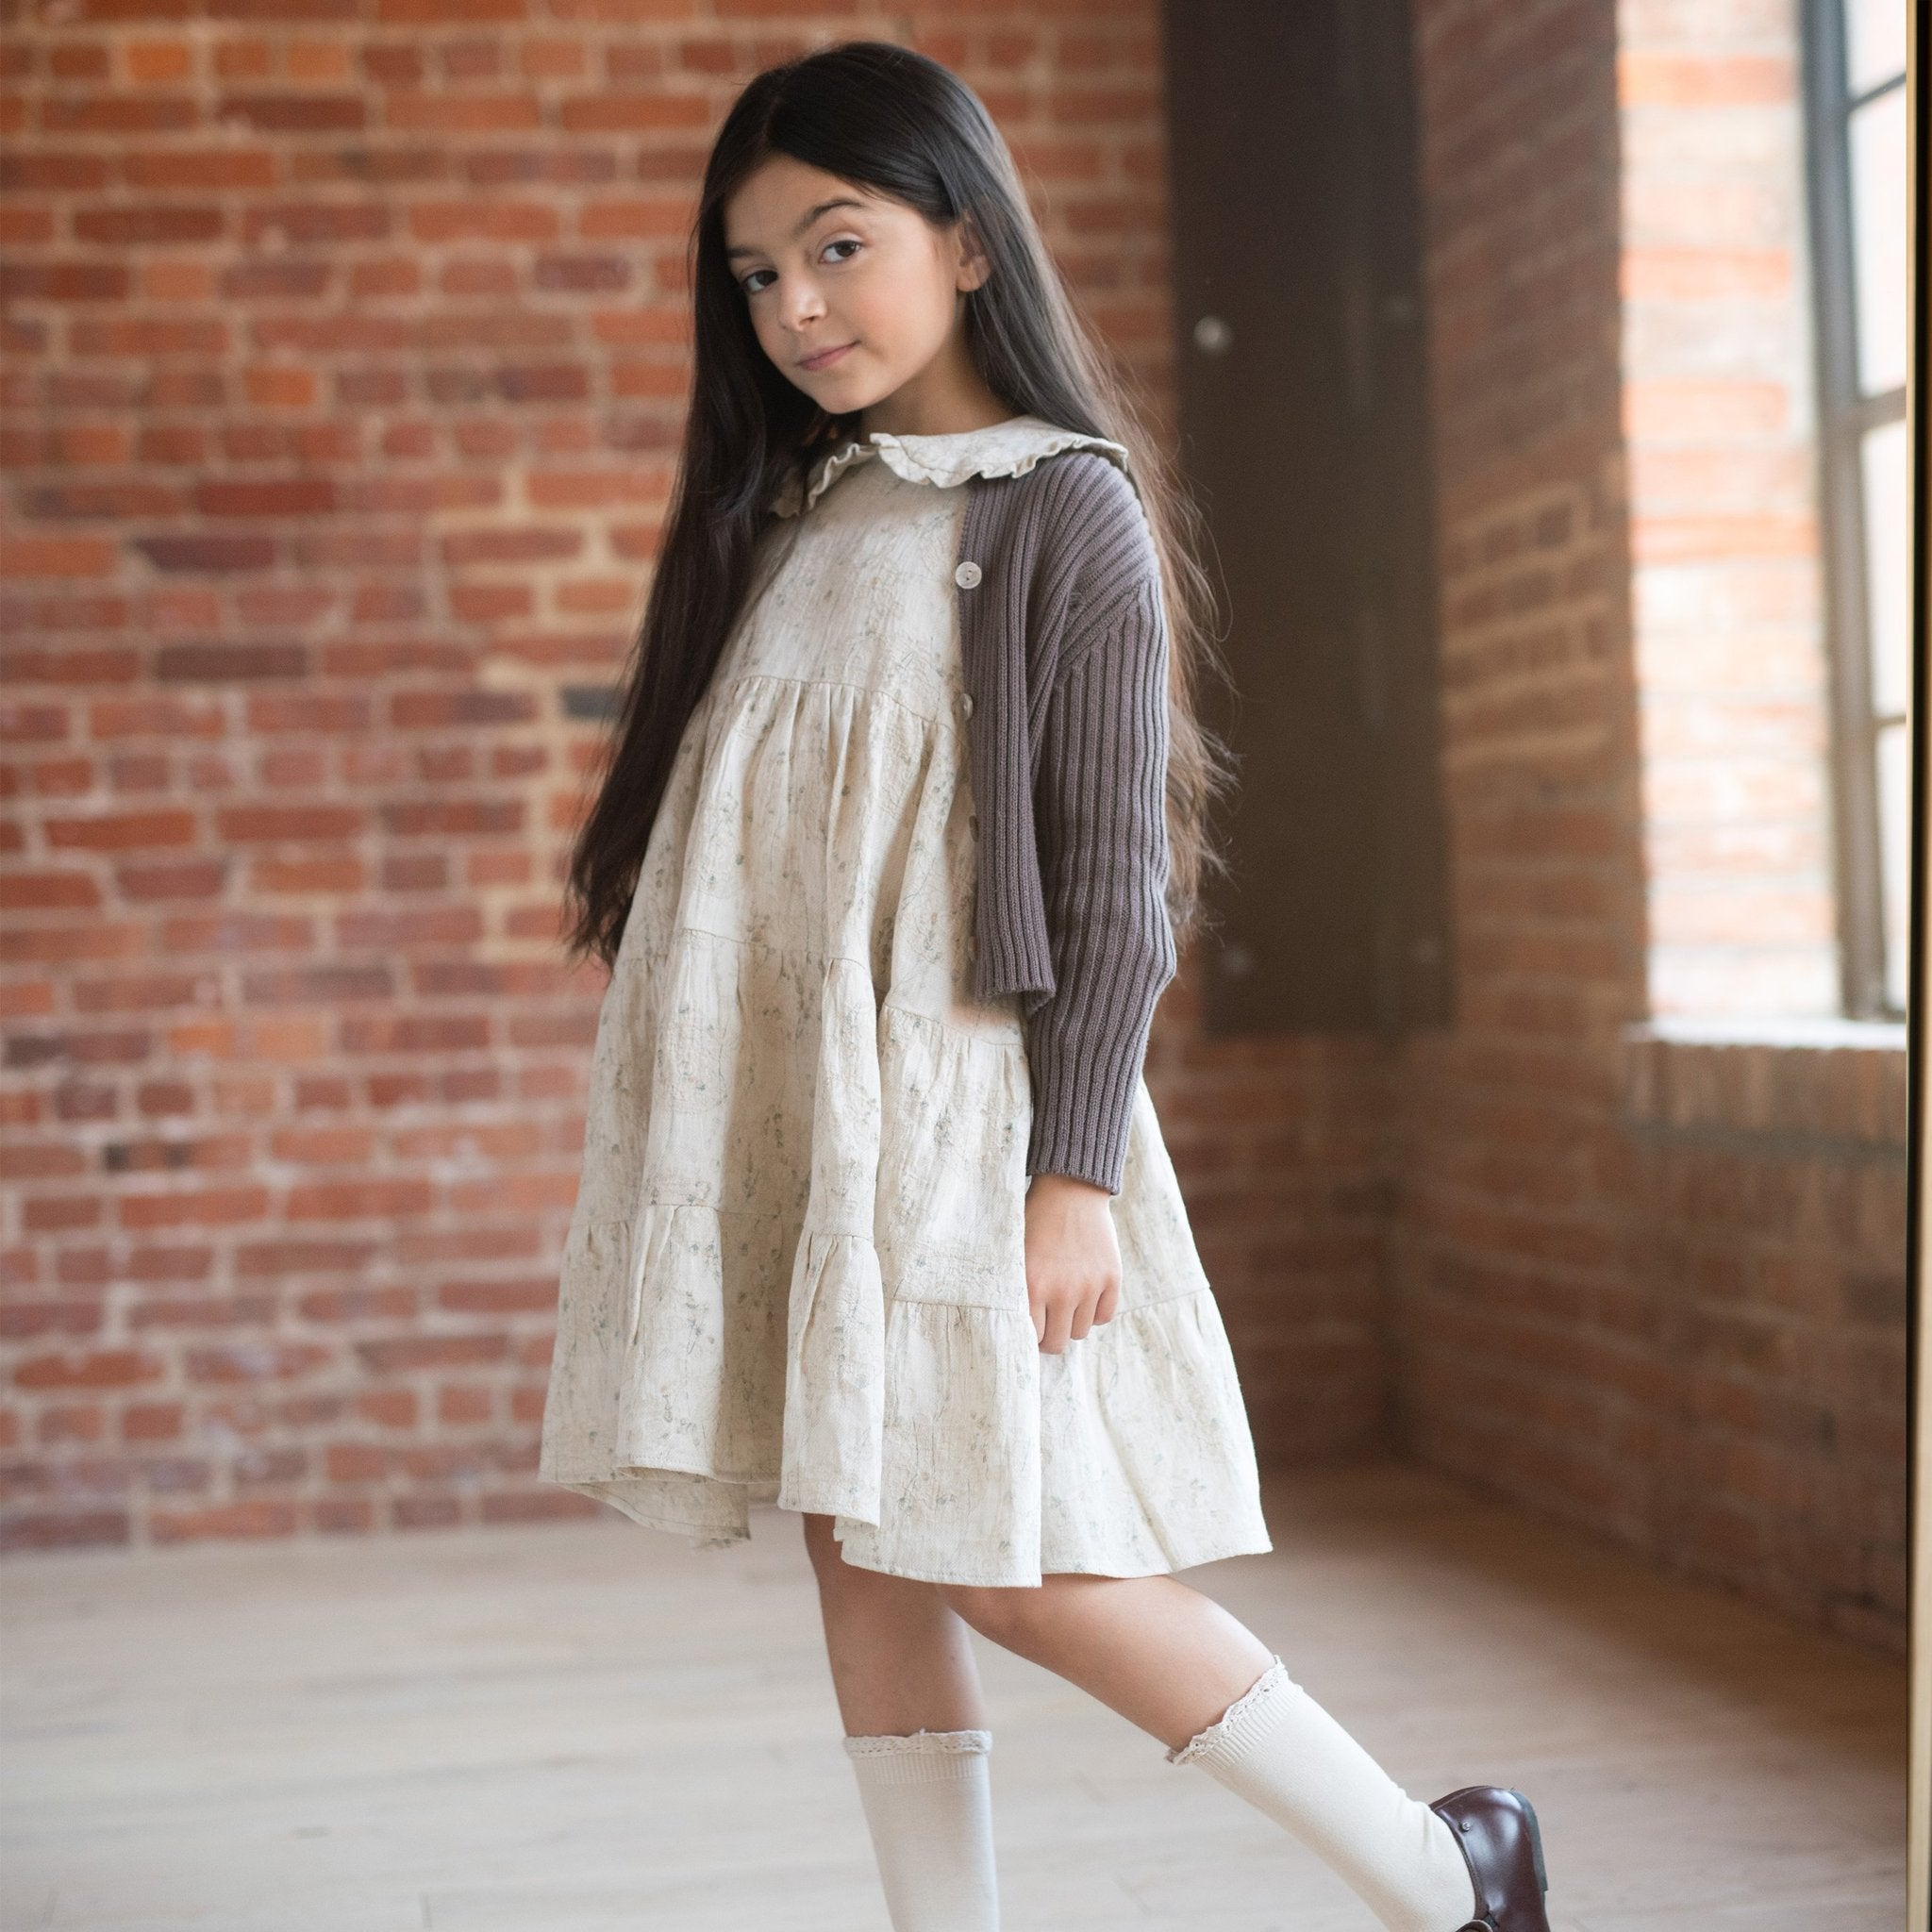 eee3c5455744 Children's Clothing Shop featuring the latest in kids fashions ...